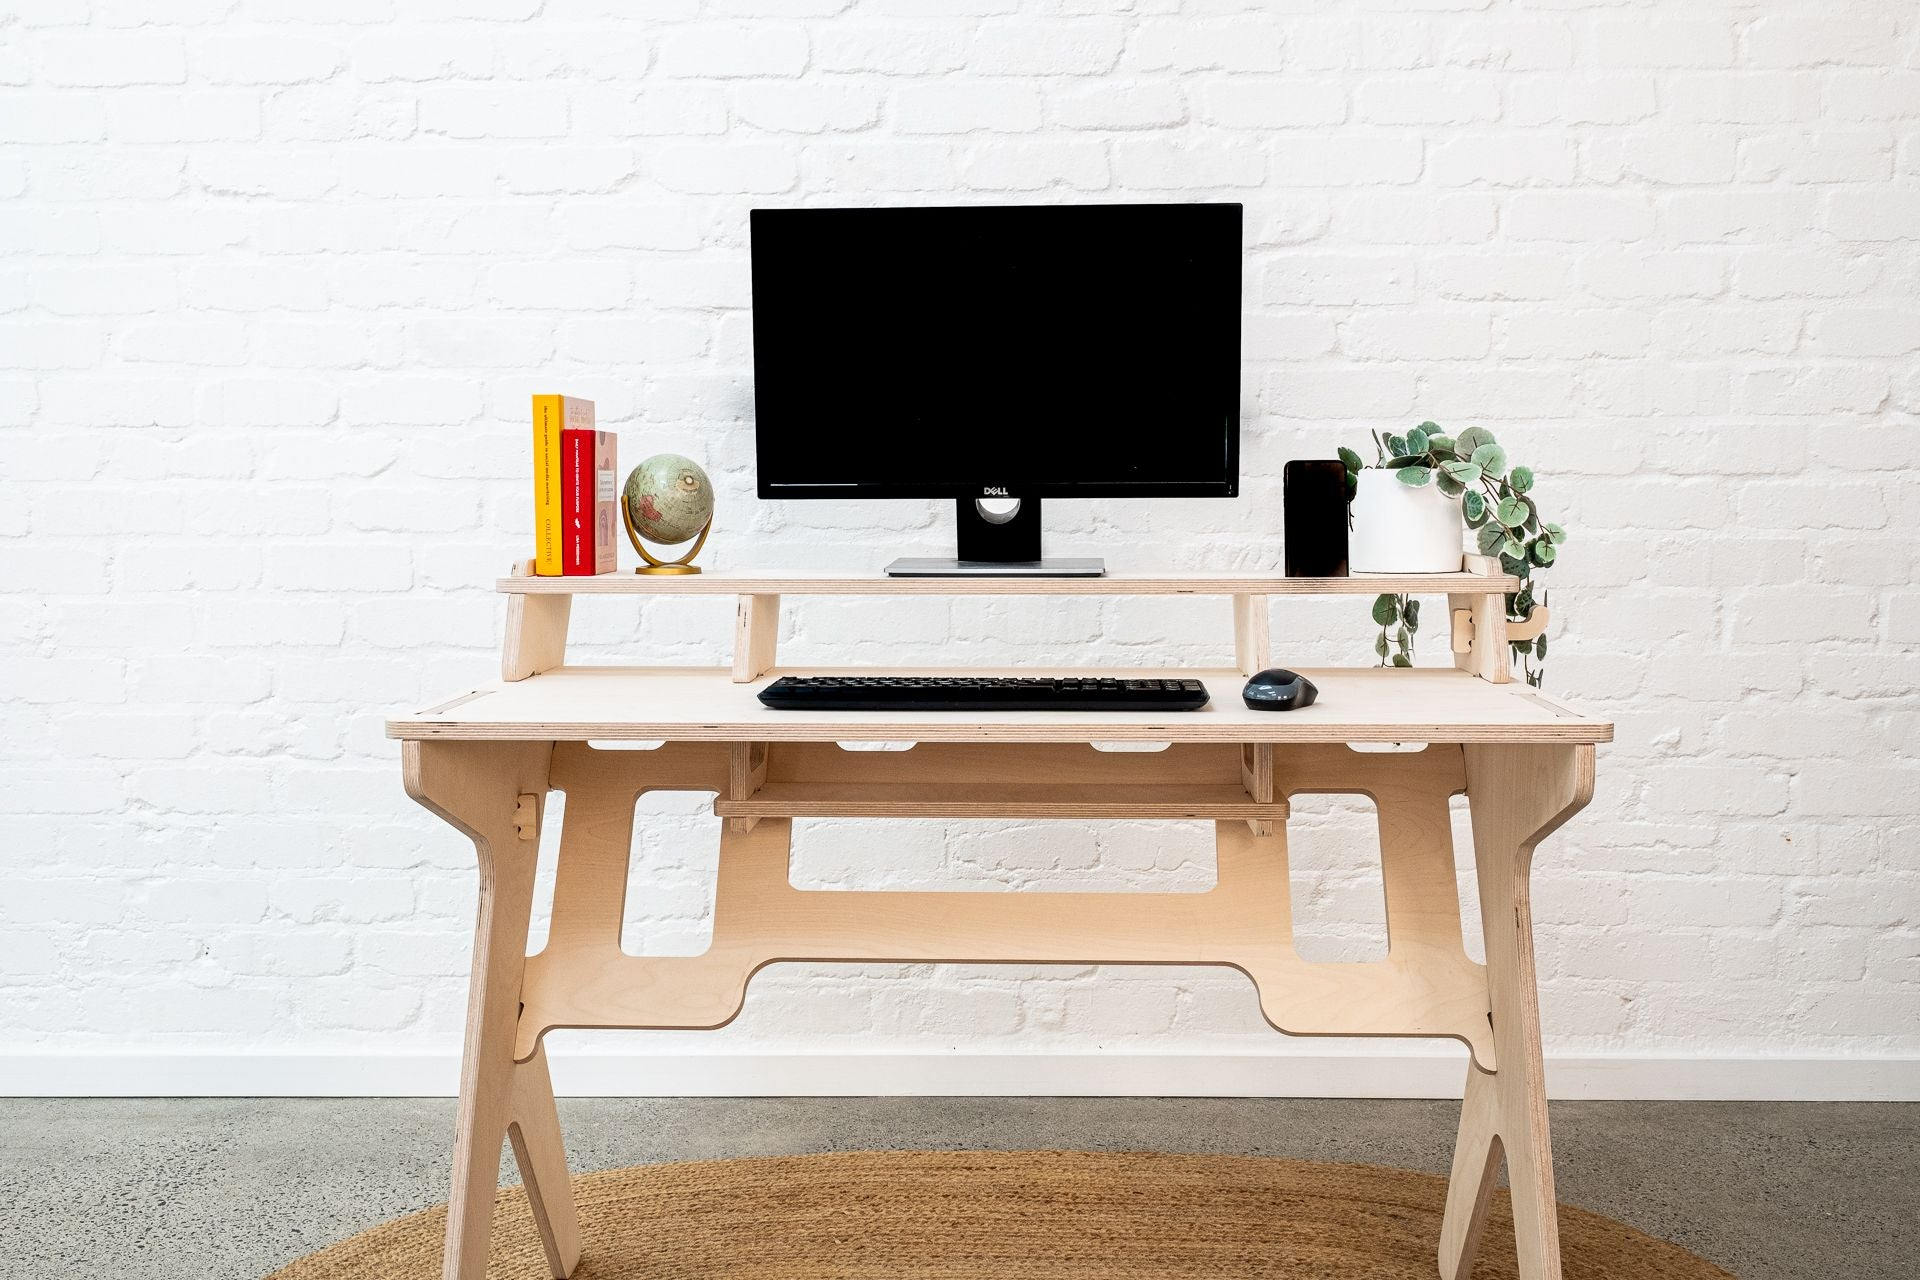 isoking, stagekings, studio Desk, desk, work table, work desk, work from home, work station, hooks, cable storage, cable management, bag hook, device hook, device holder, ipad holder, iphone holder, solidwood, solid birch, ply, plywood, birch, table, writing desk